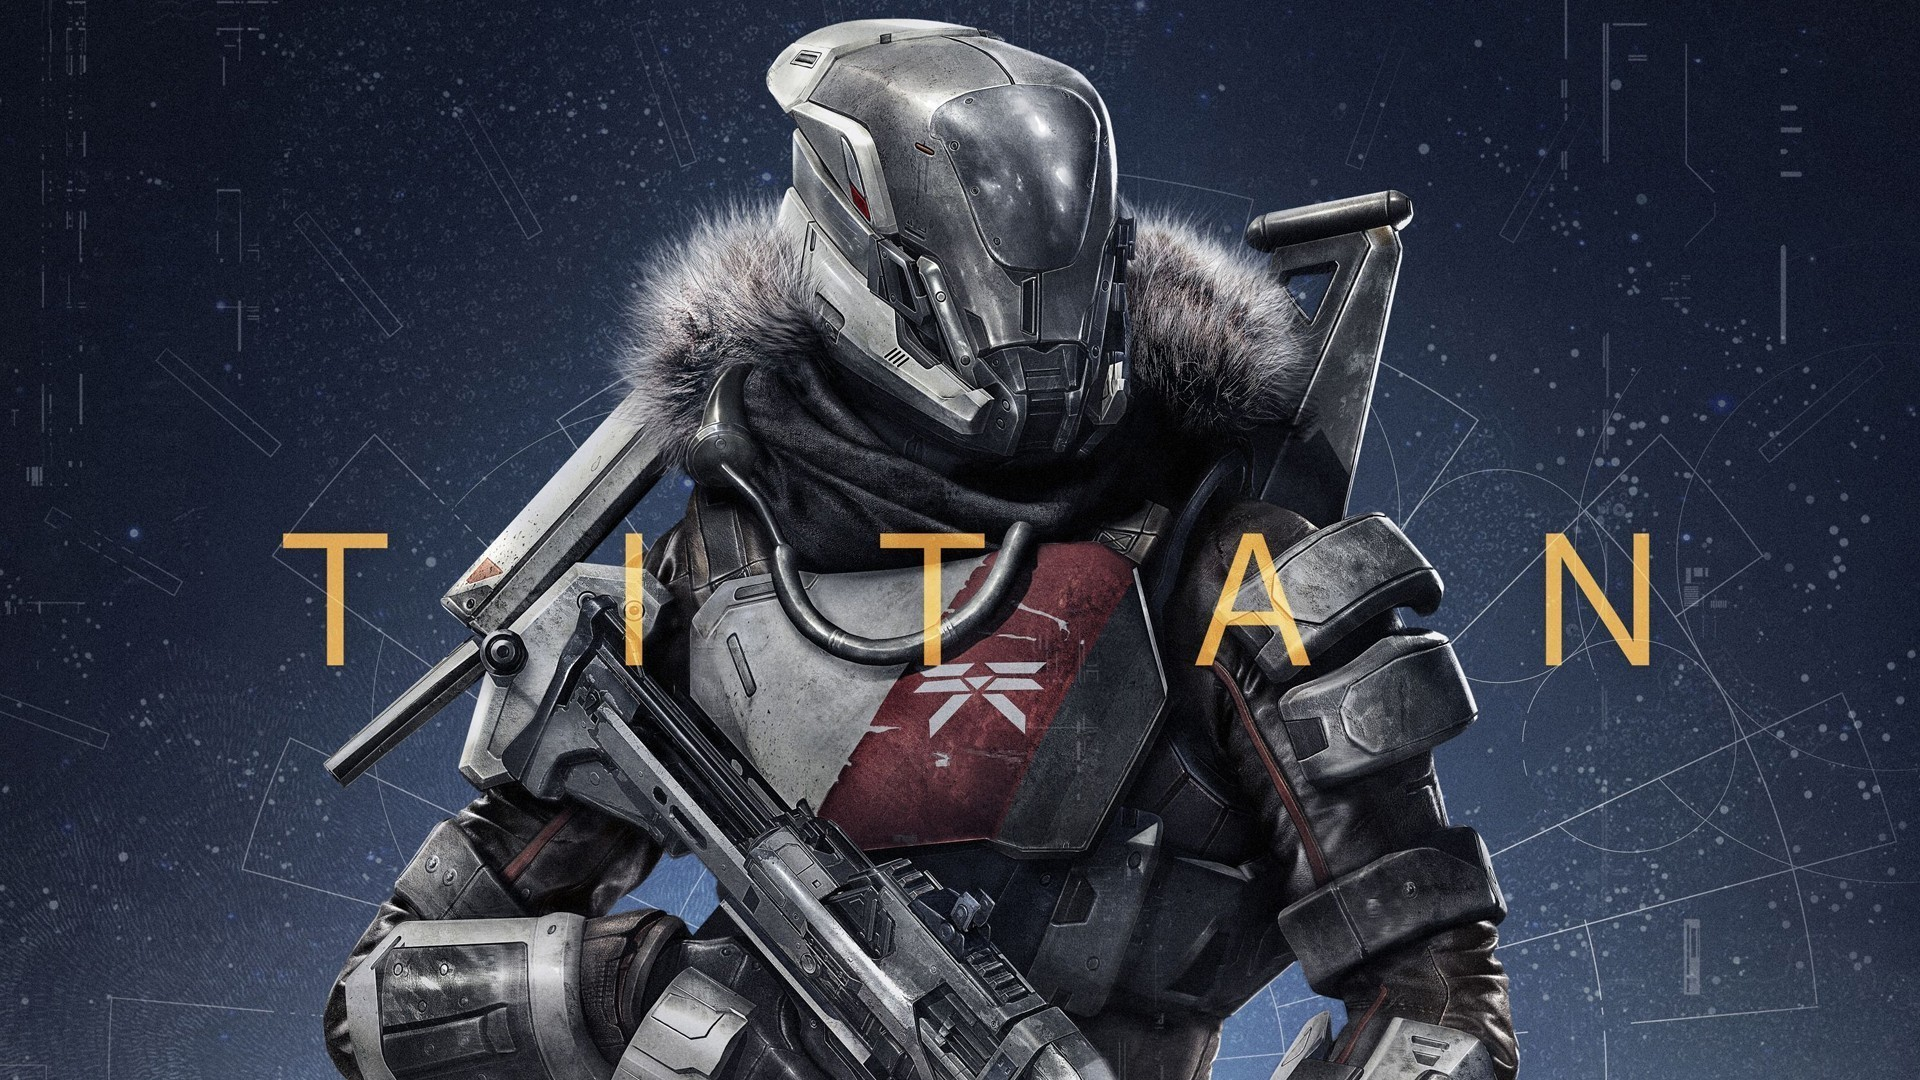 1920x1080 Titan in Destiny Wallpapers | HD Wallpapers